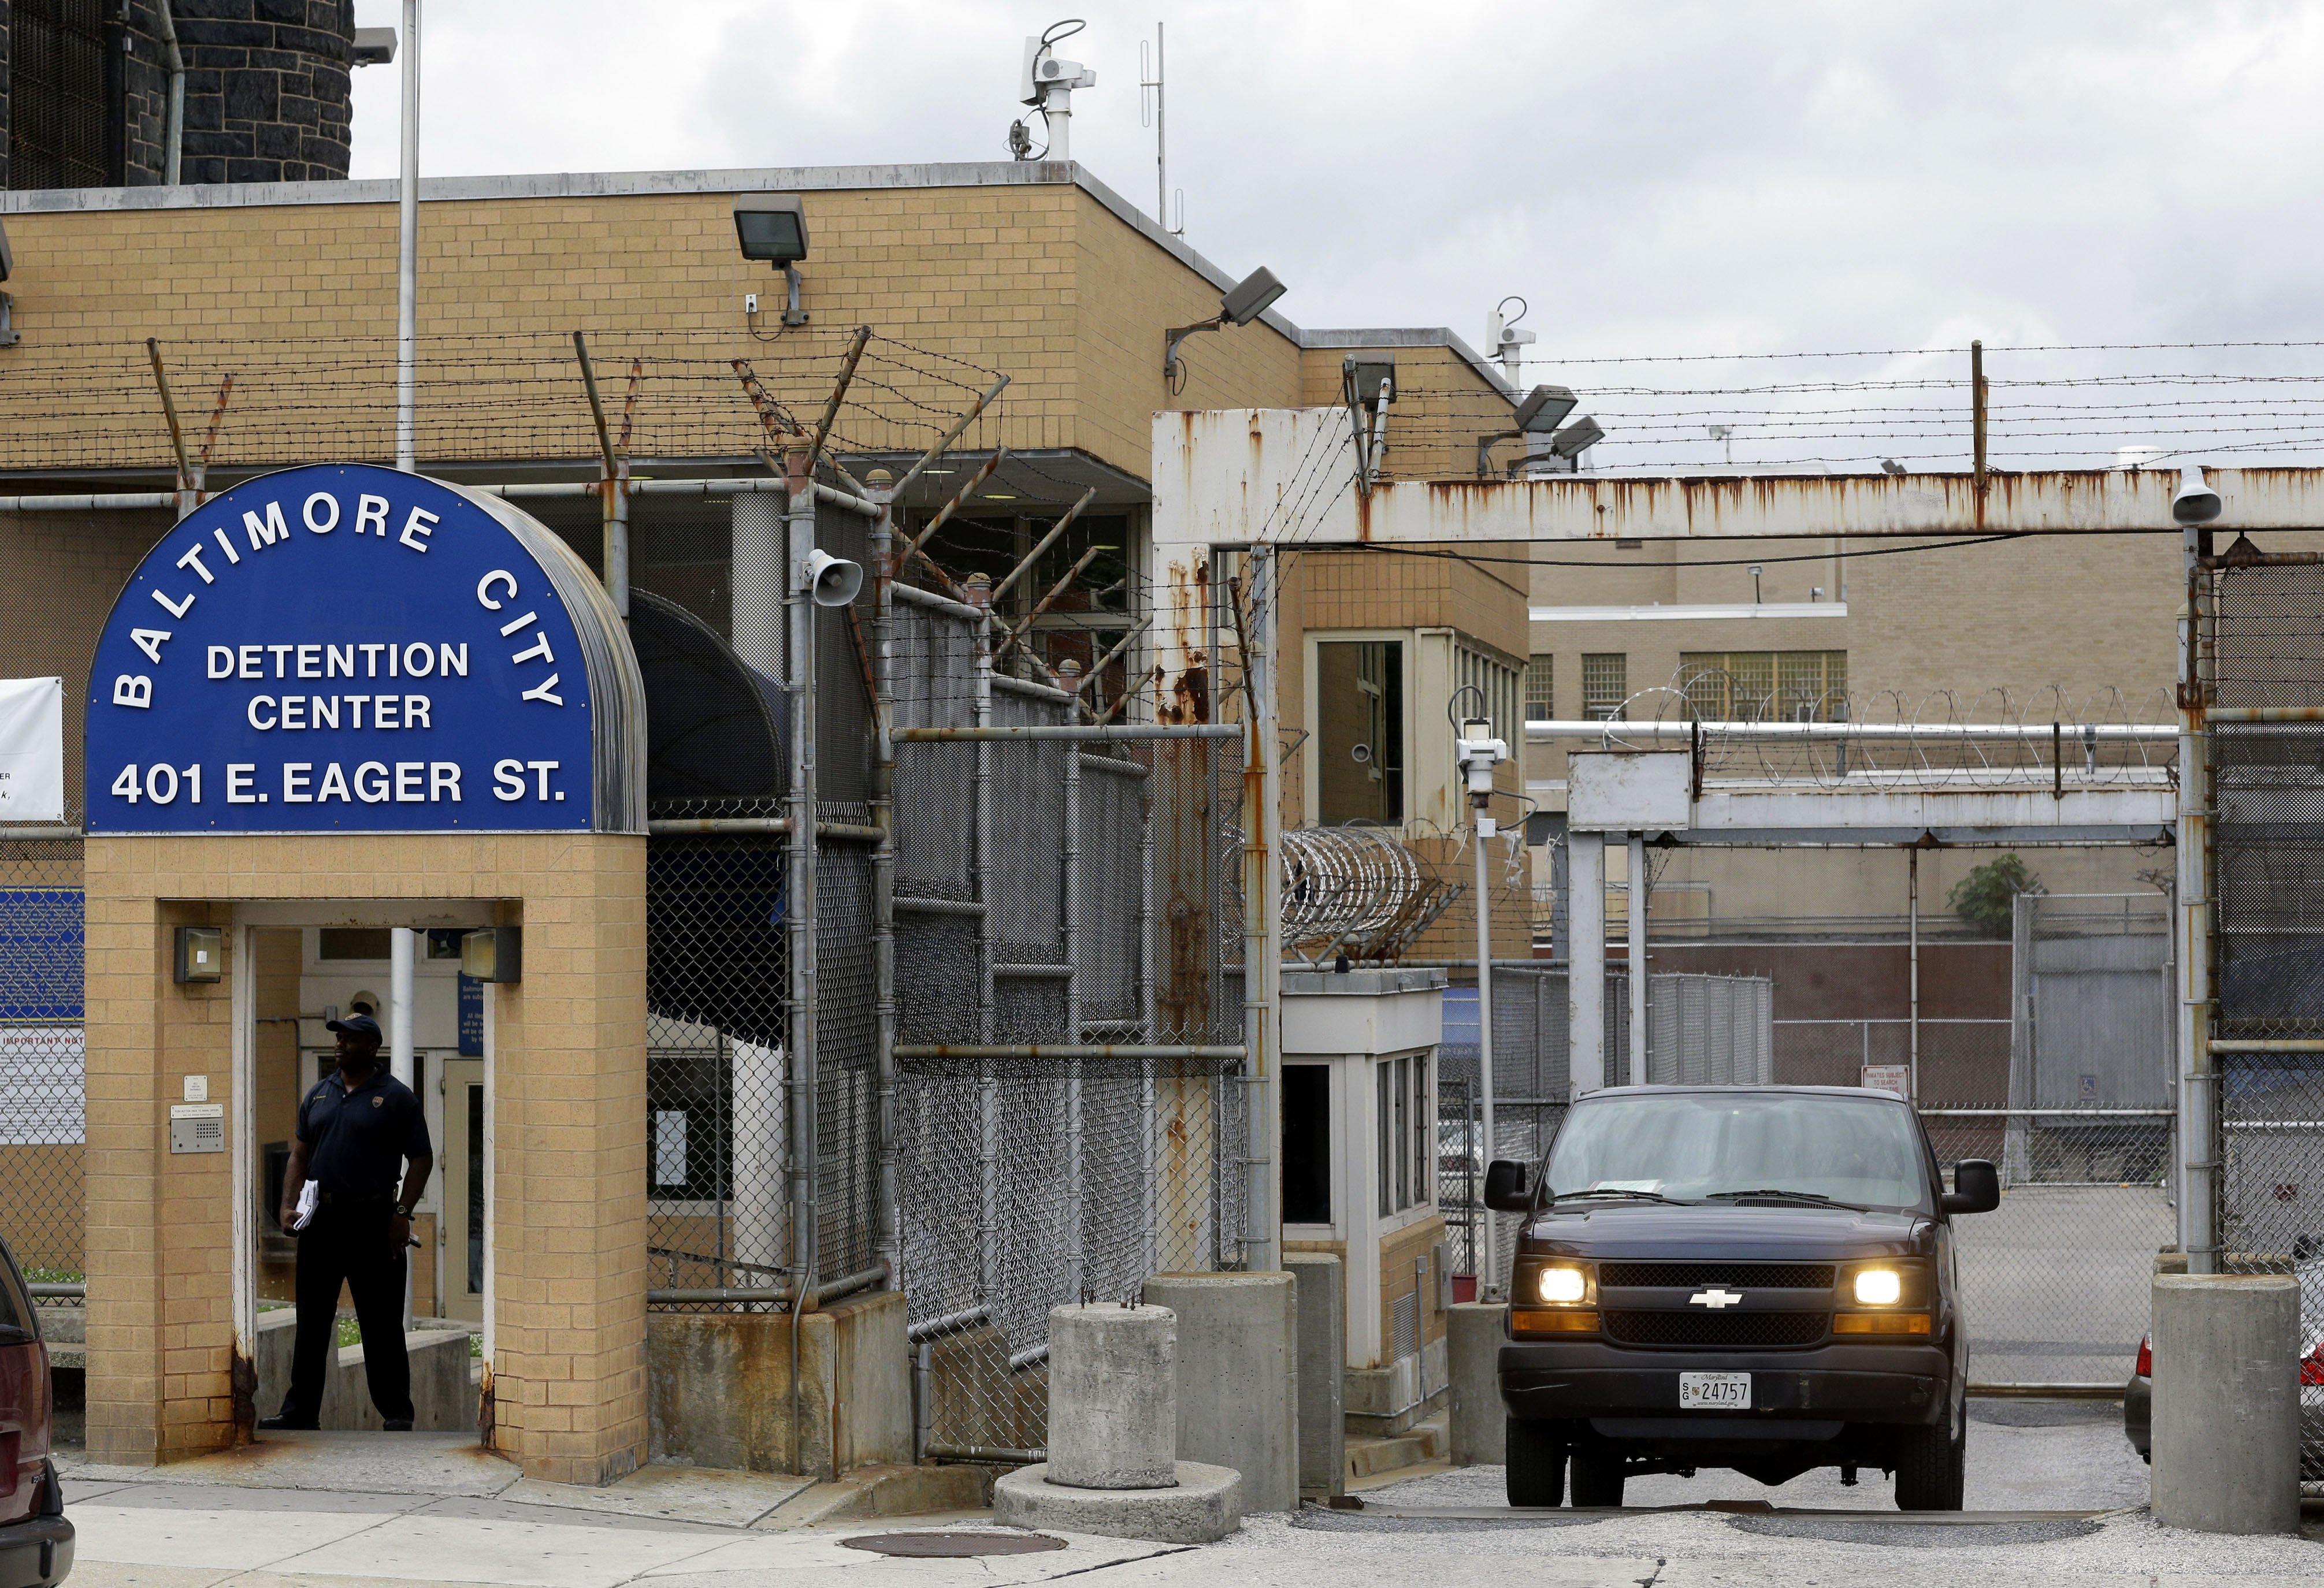 An inmate transport van departs from the Baltimore City Detention Center in Baltimore on June 6, 2013.